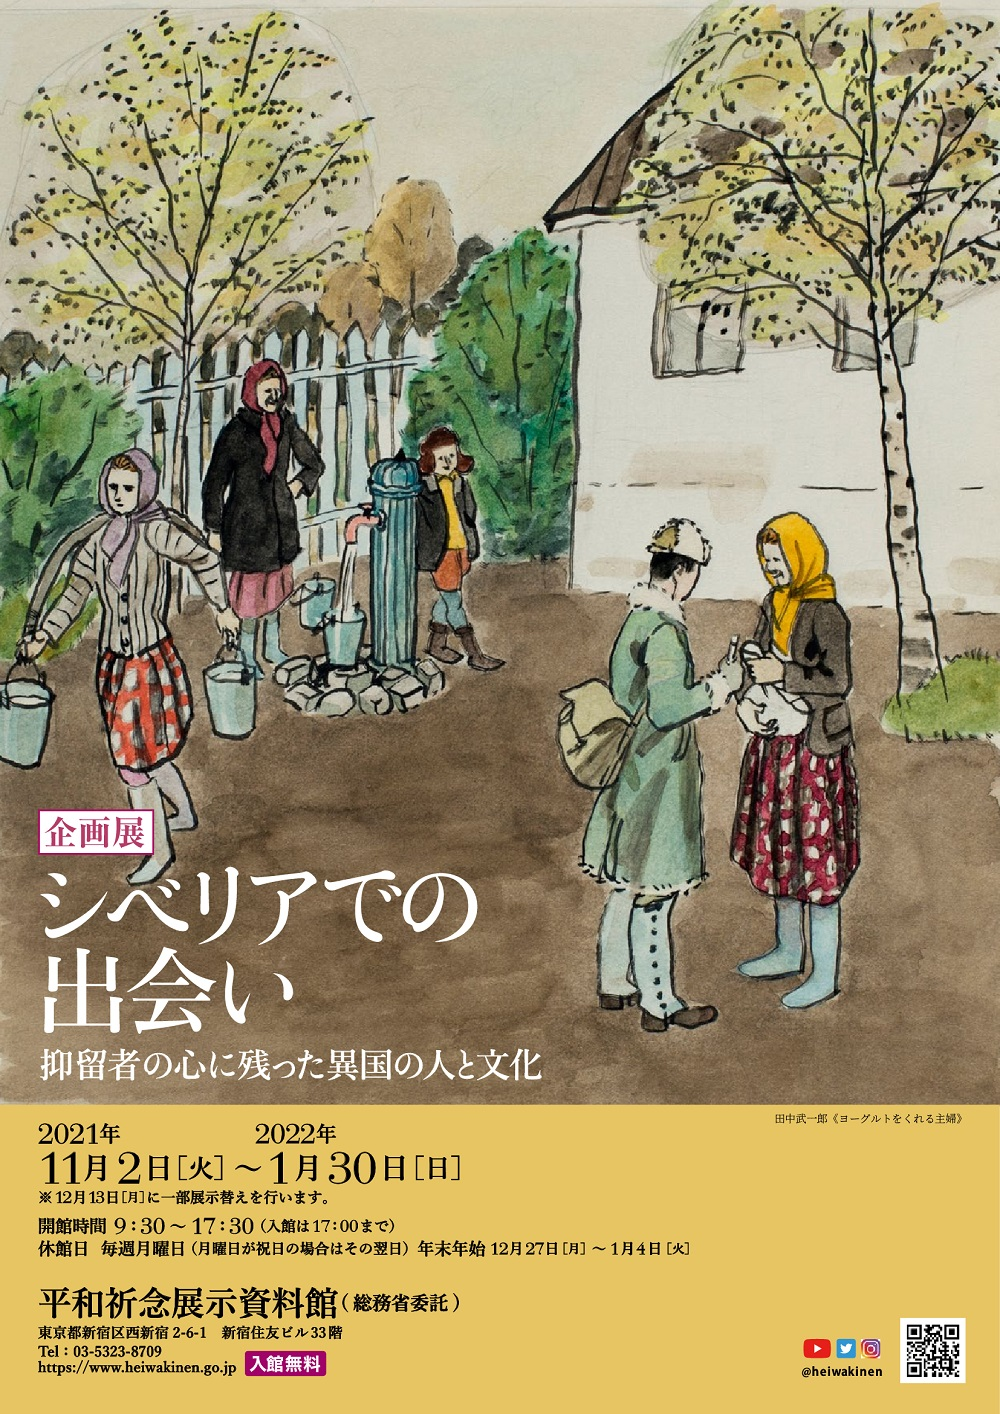 """Read more about the article 企画展「シベリアでの出会い <span style=""""font-size:80%"""">抑留者の心に残った異国の人と文化</span>」<p class=""""new_icon"""">NEW</p>"""